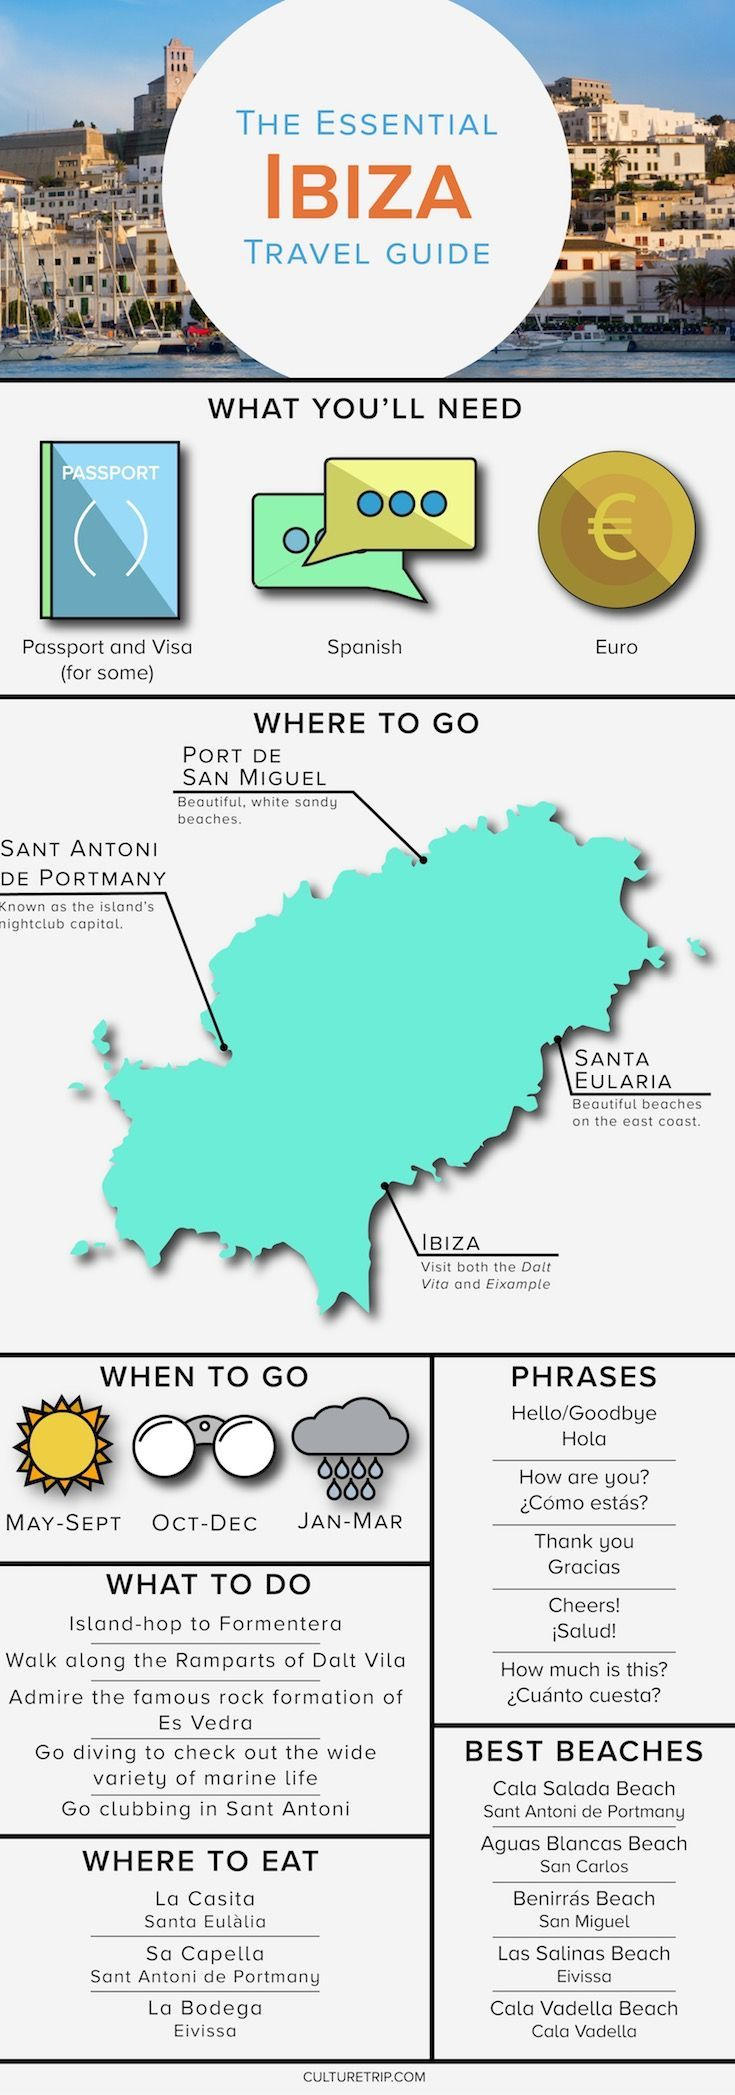 Travel infographic - The Essential Travel Guide to Ibiza (Infographic)